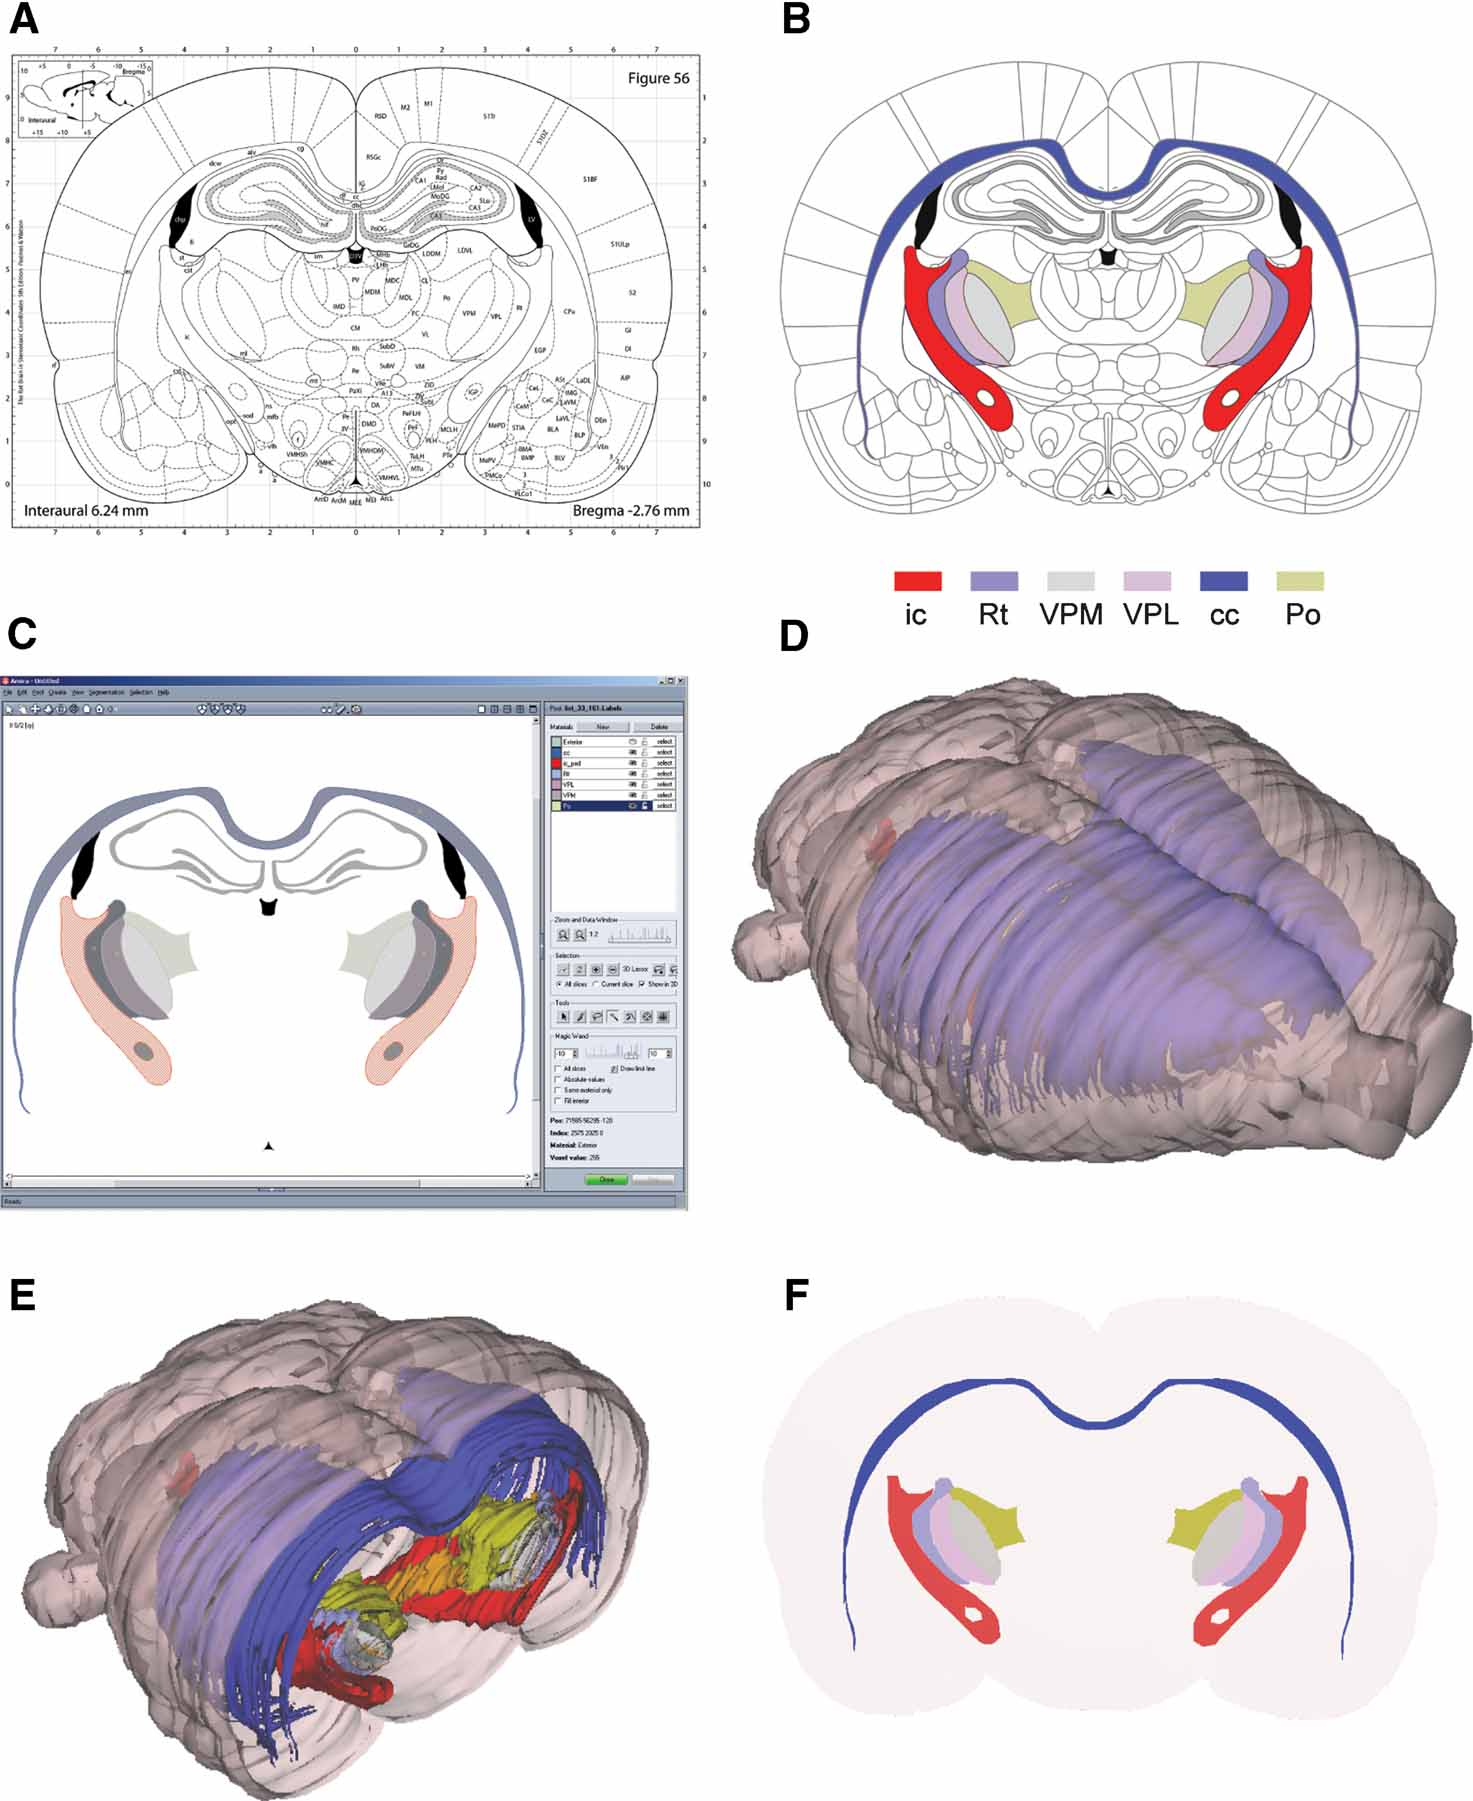 Frontiers Three Dimensional Atlas System For Mouse And Rat Brain